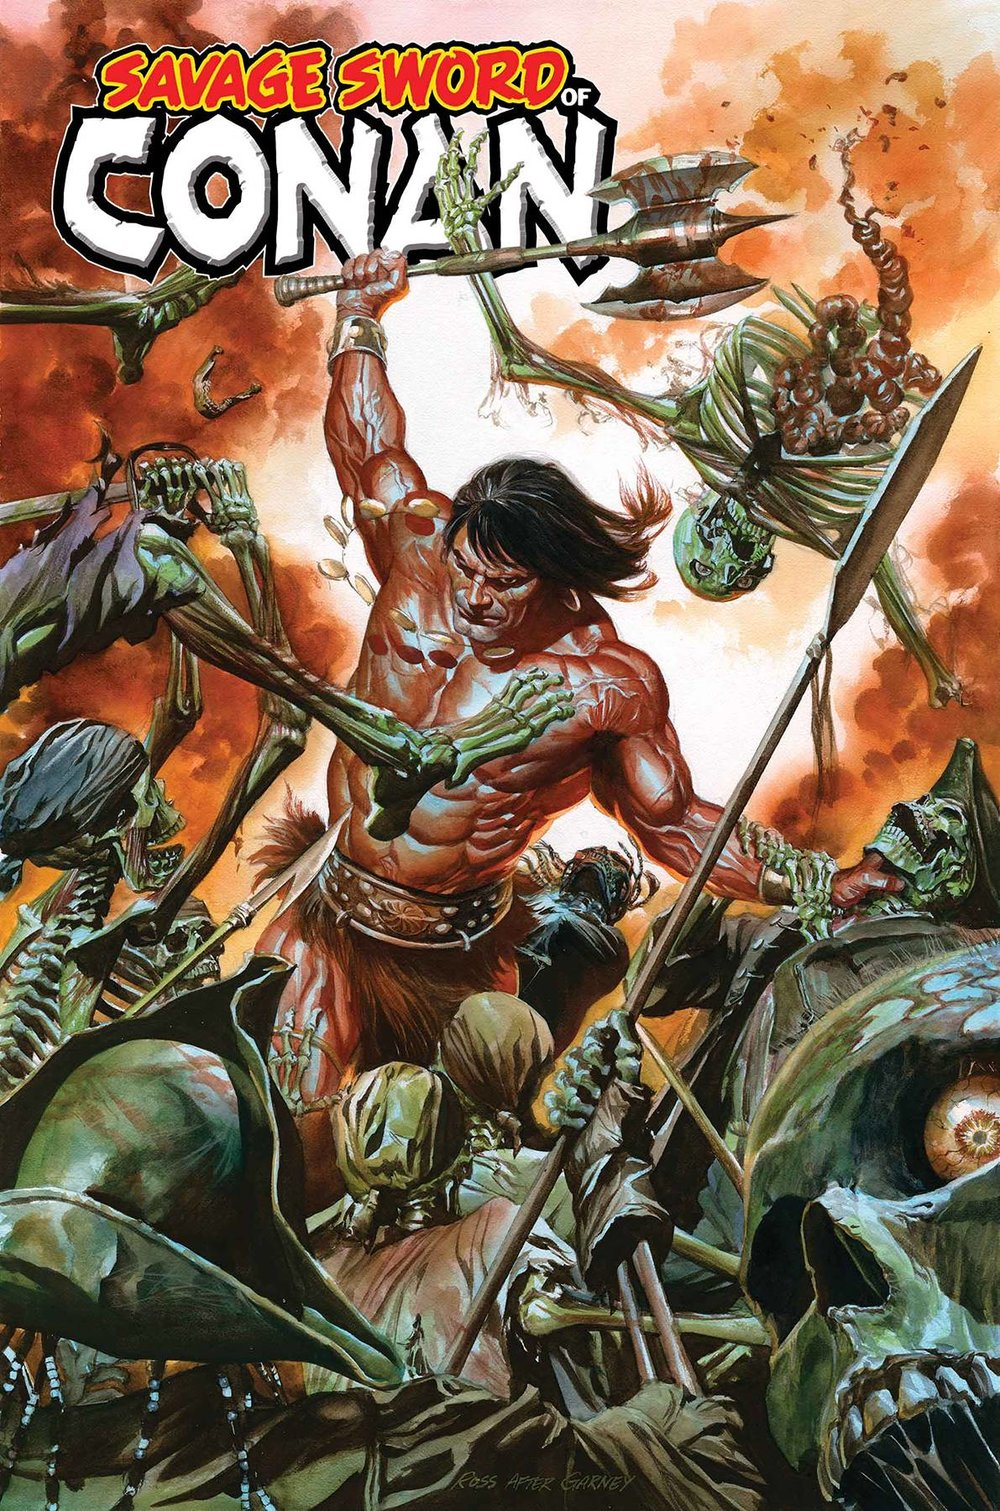 SAVAGE SWORD OF CONAN BY ALEX ROSS POSTER.jpg